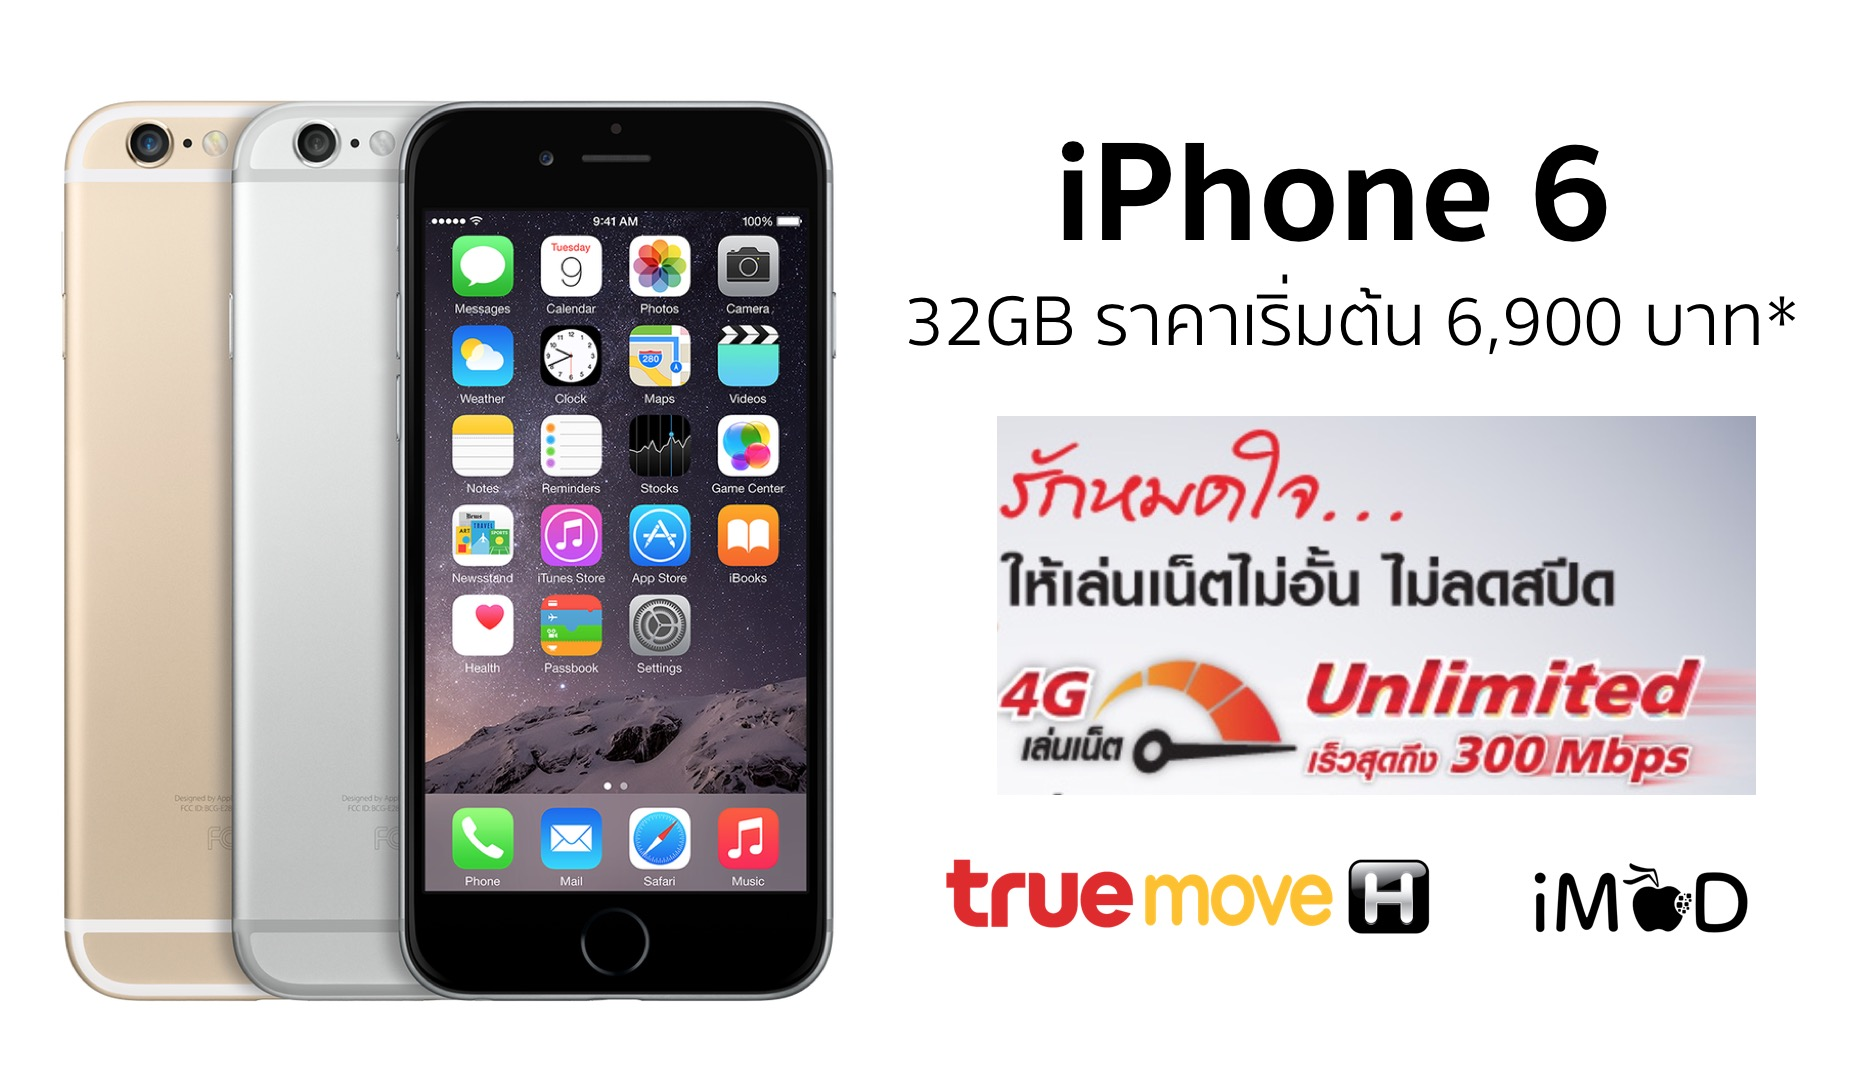 iphone 6 4g+ unlimited